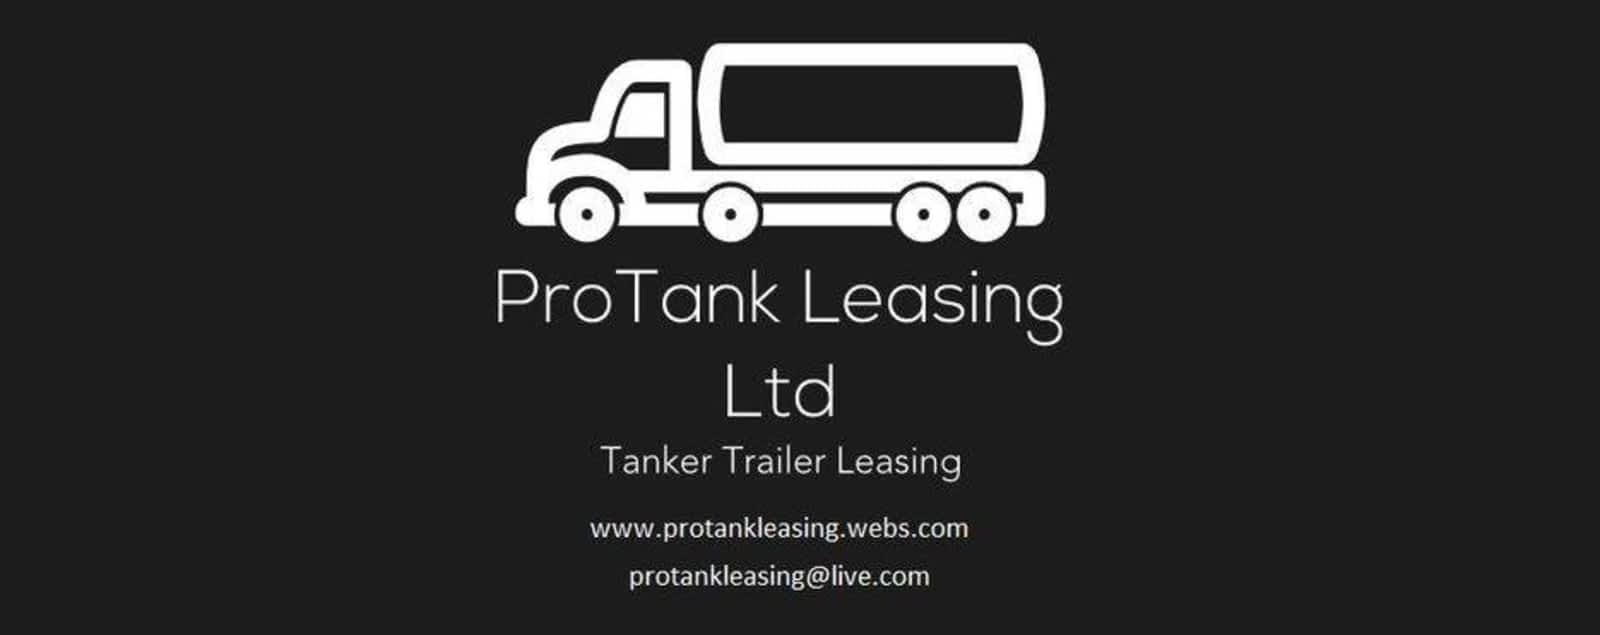 ProTank Leasing Ltd - Opening Hours - 196 Riverbend Dr